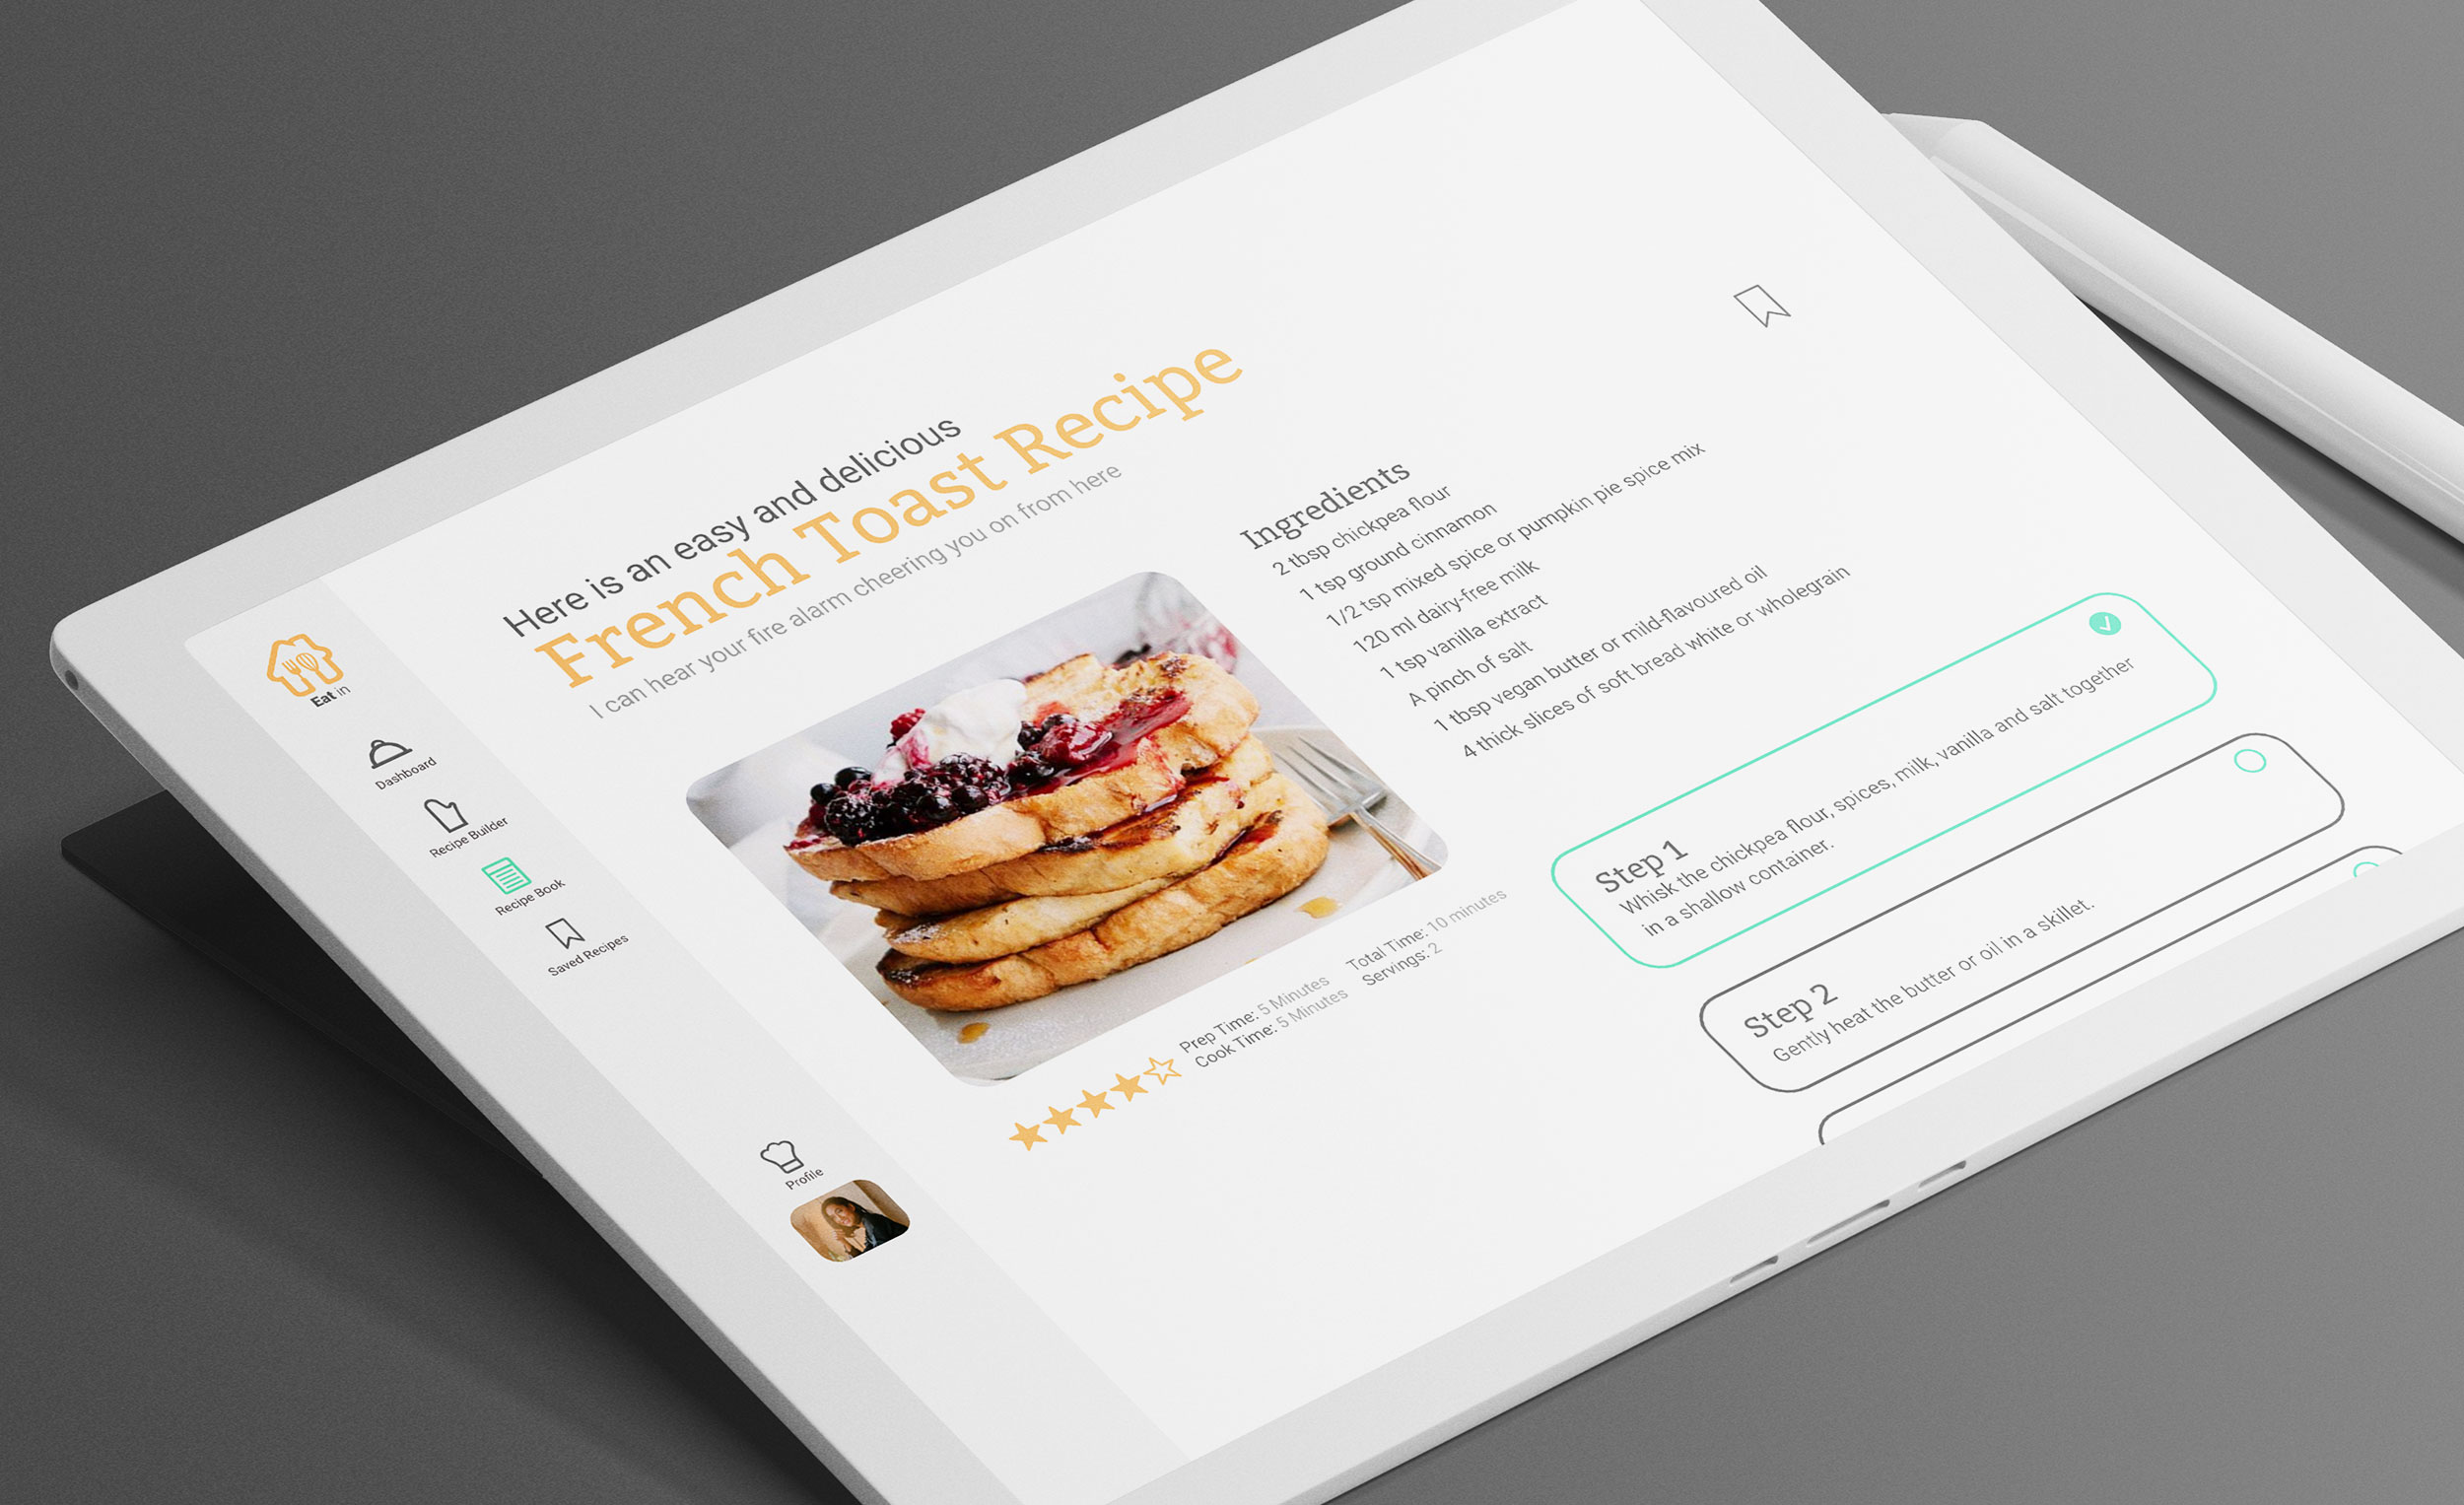 Eat in recipe screen on a tablet